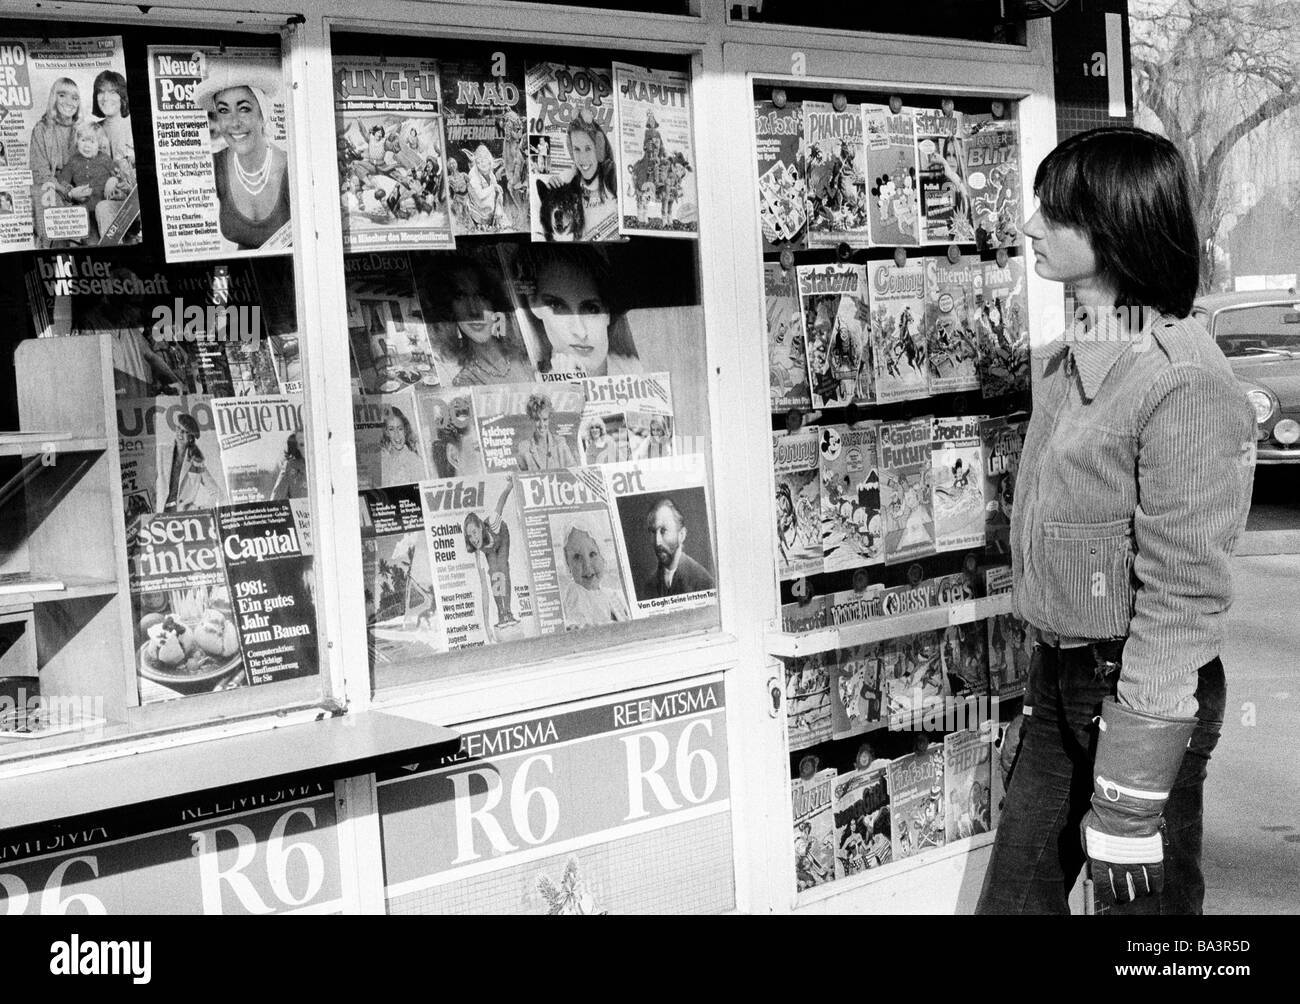 Eighties, black and white photo, people, young boy at a kiosk looking to the magazines, leisurewear, jacket, leather - Stock Image